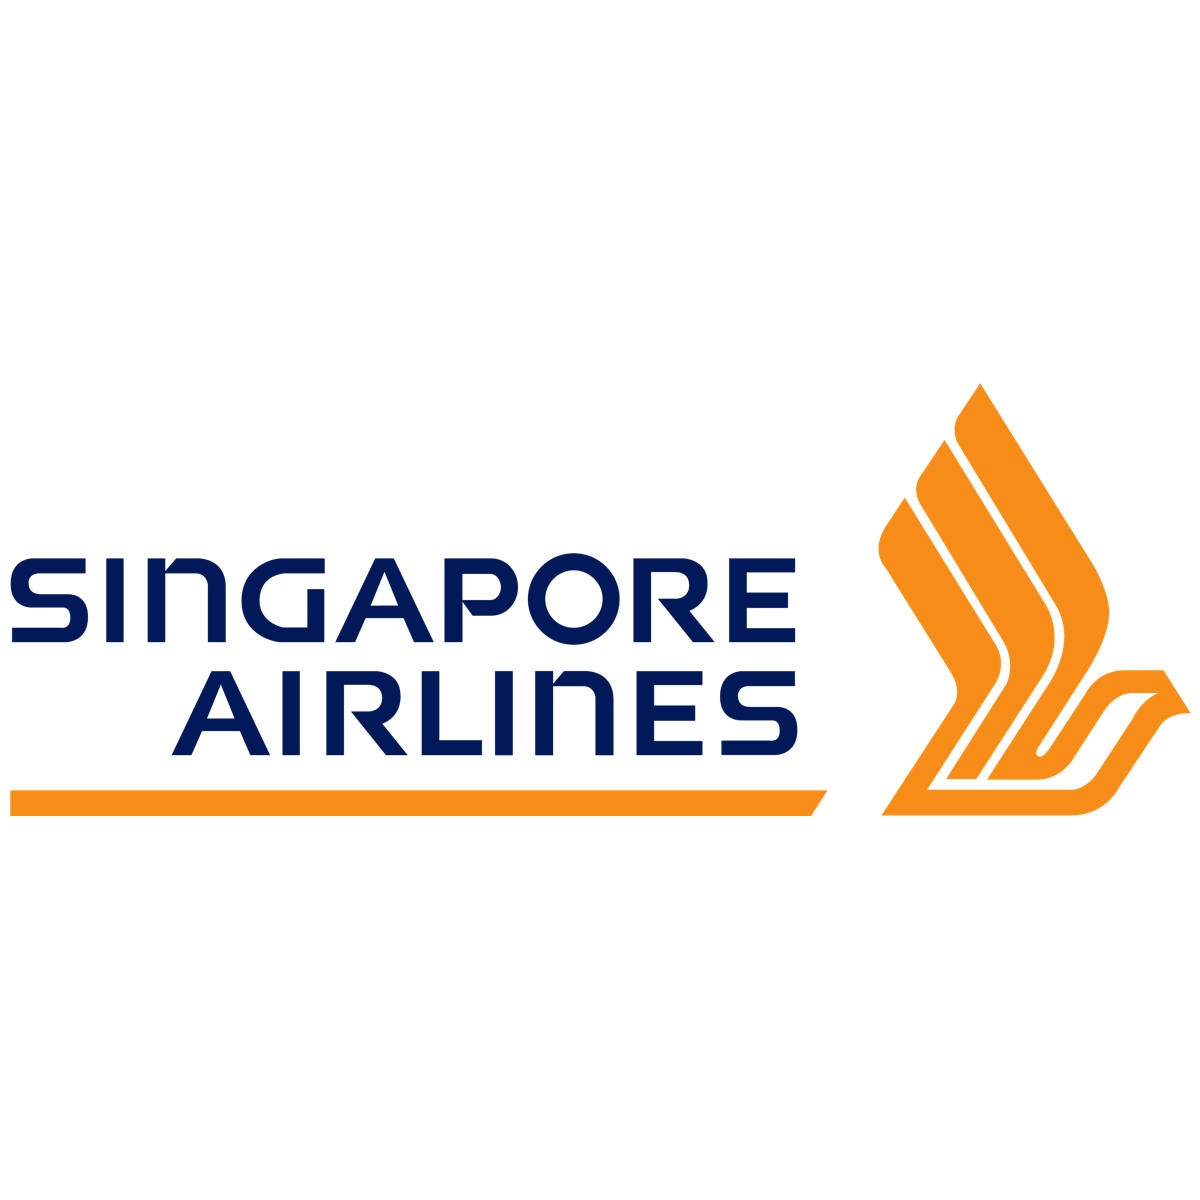 Singapore Airlines (SIA) - DBS Vickers 2018-02-14: Fuller Planes, Better Profits